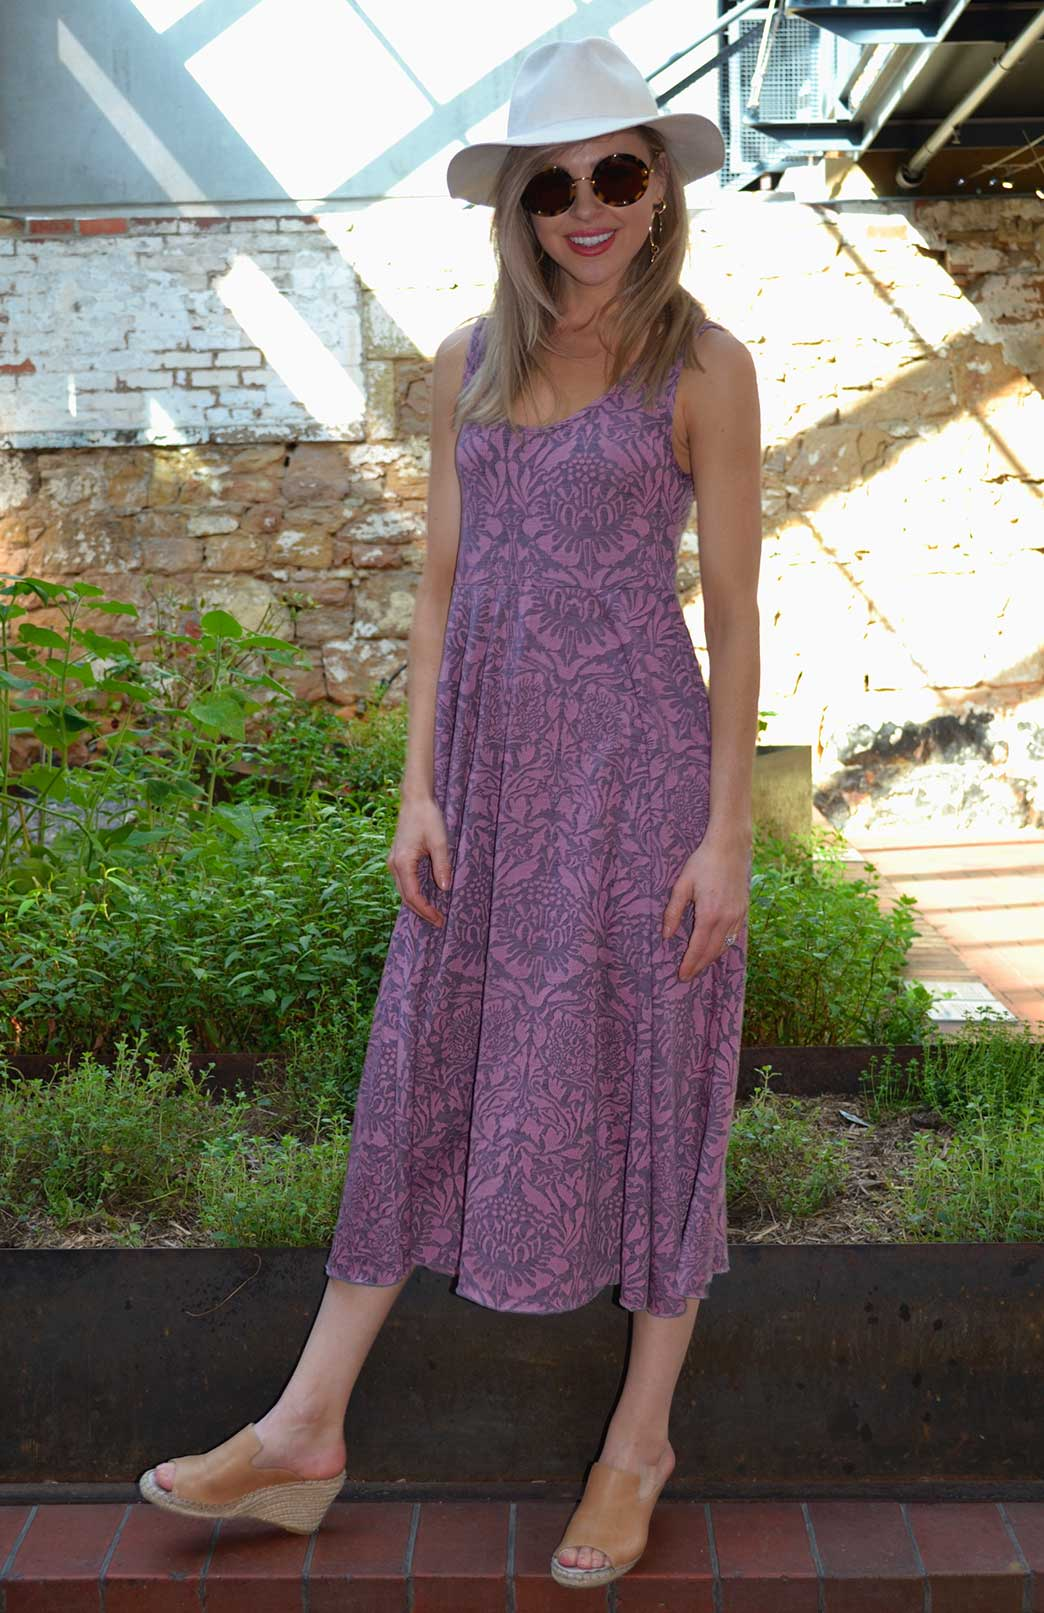 Fan Dress - Women's Pink Floral Woollen Dress with empire waistline - Smitten Merino Tasmania Australia